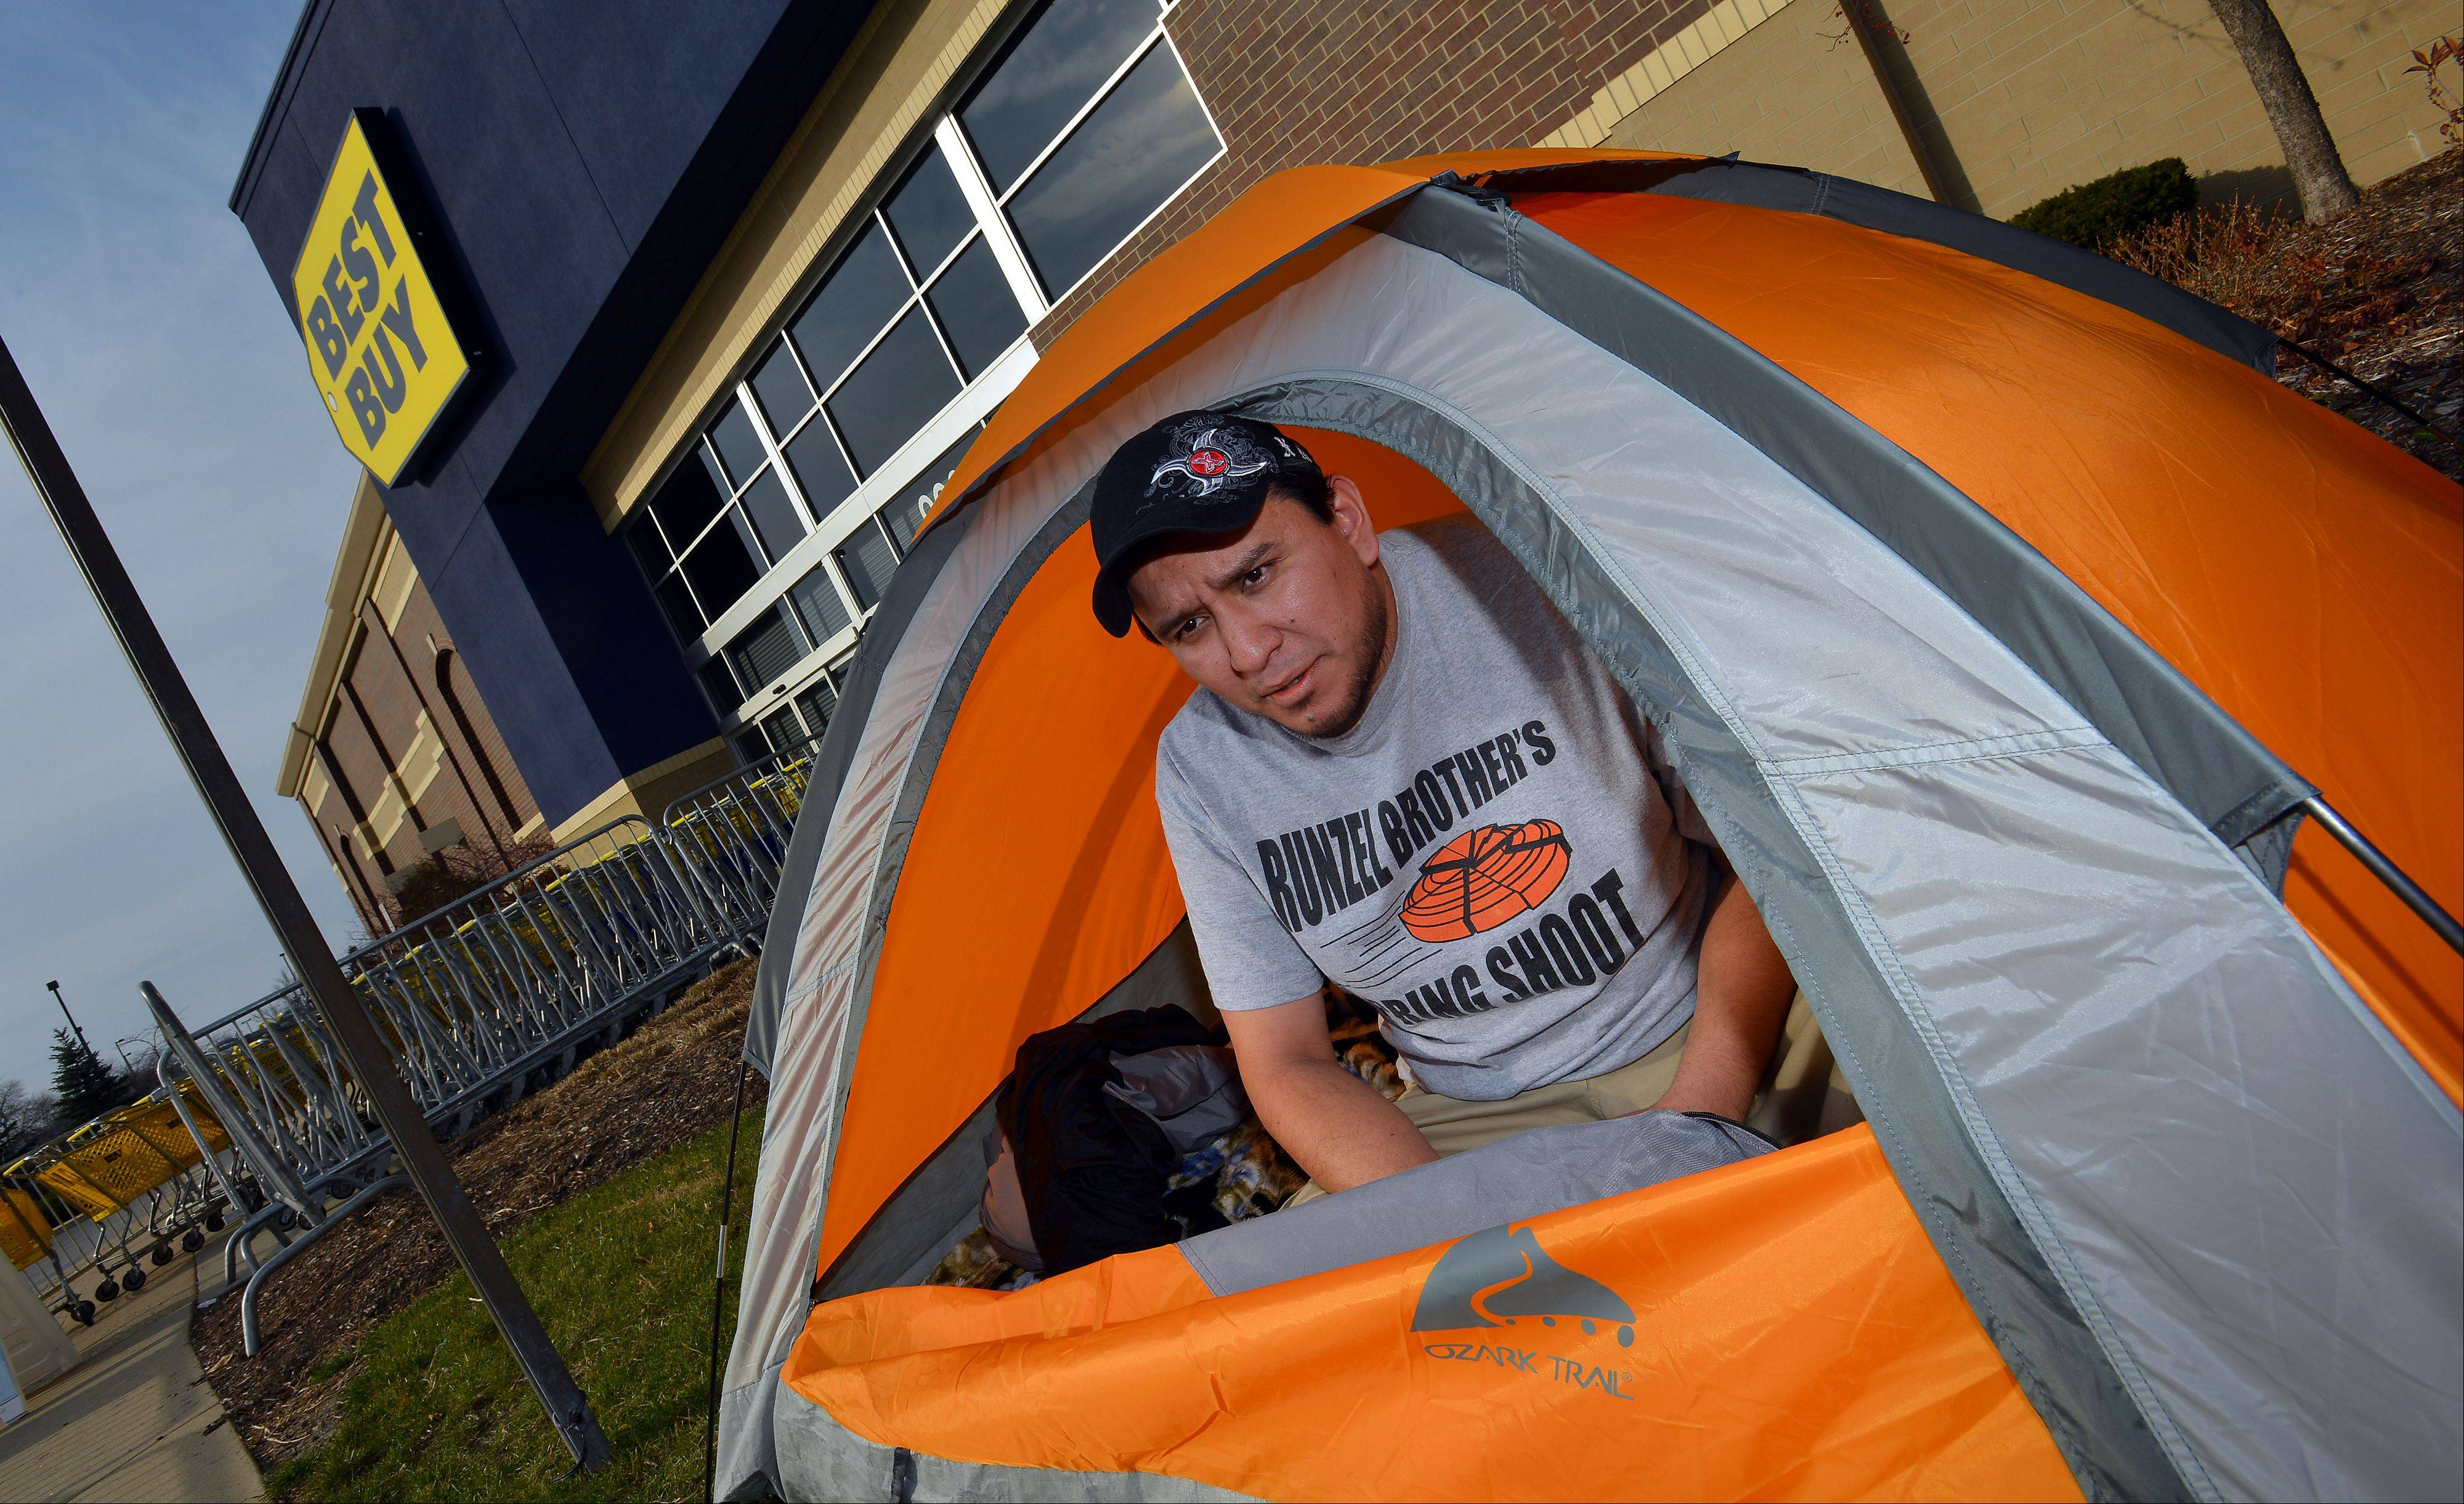 Tent city in front of the Best Buy in Schaumburg popped up at 12 a.m. on Tuesday with Felipe Acosta,33, of Mt. Prospect driving the first tent stake looking for Black Friday deals skipping his Thanksgiving dinner.